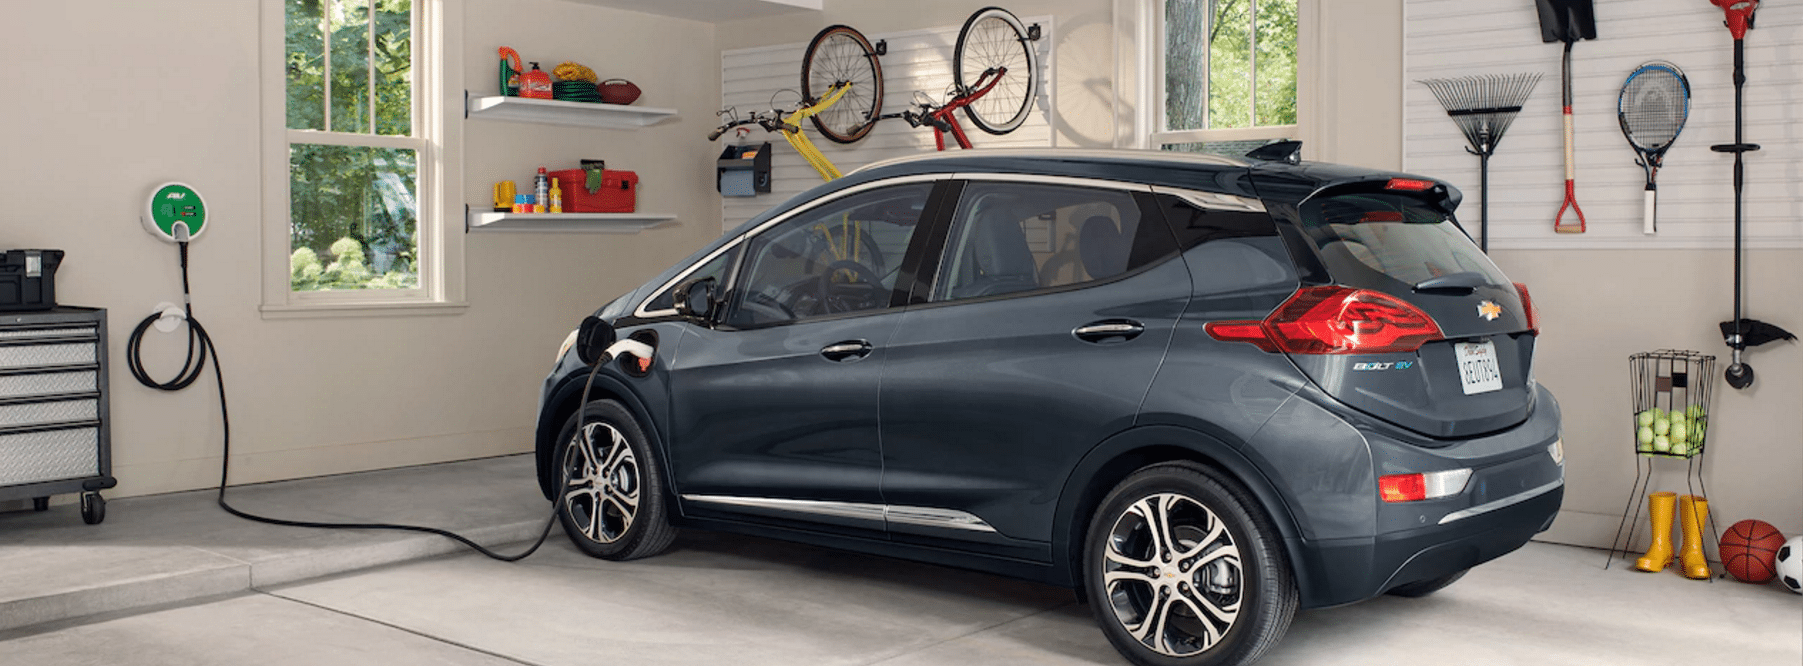 Charging your 2018 Chevy Bolt